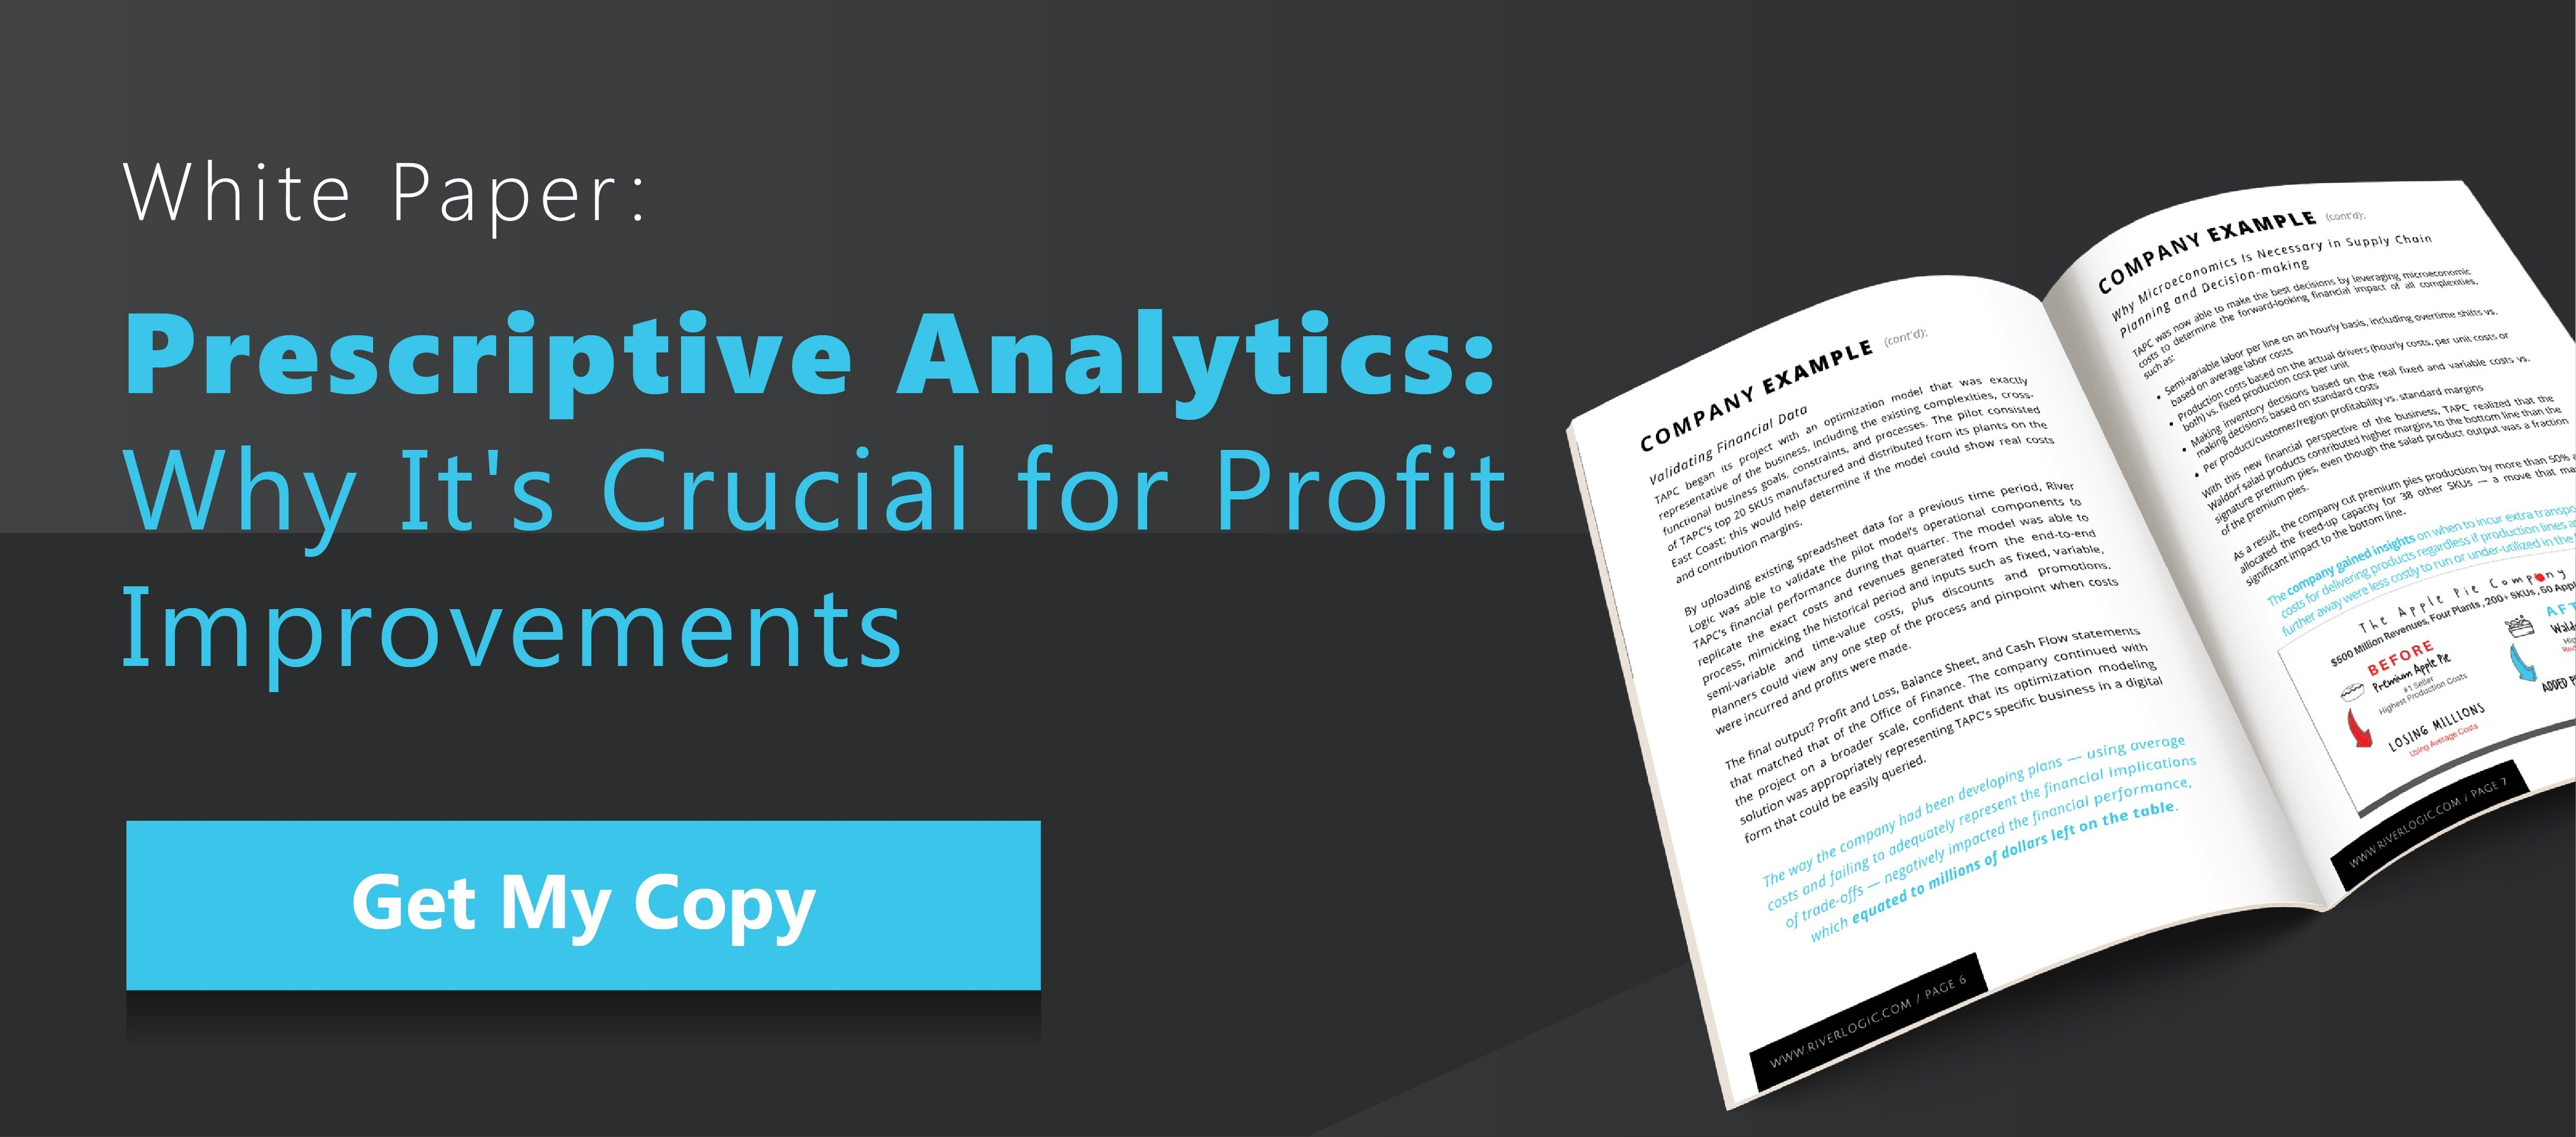 Prescriptive Analytics: Why It's Crucial for Profit Improvements - Inline